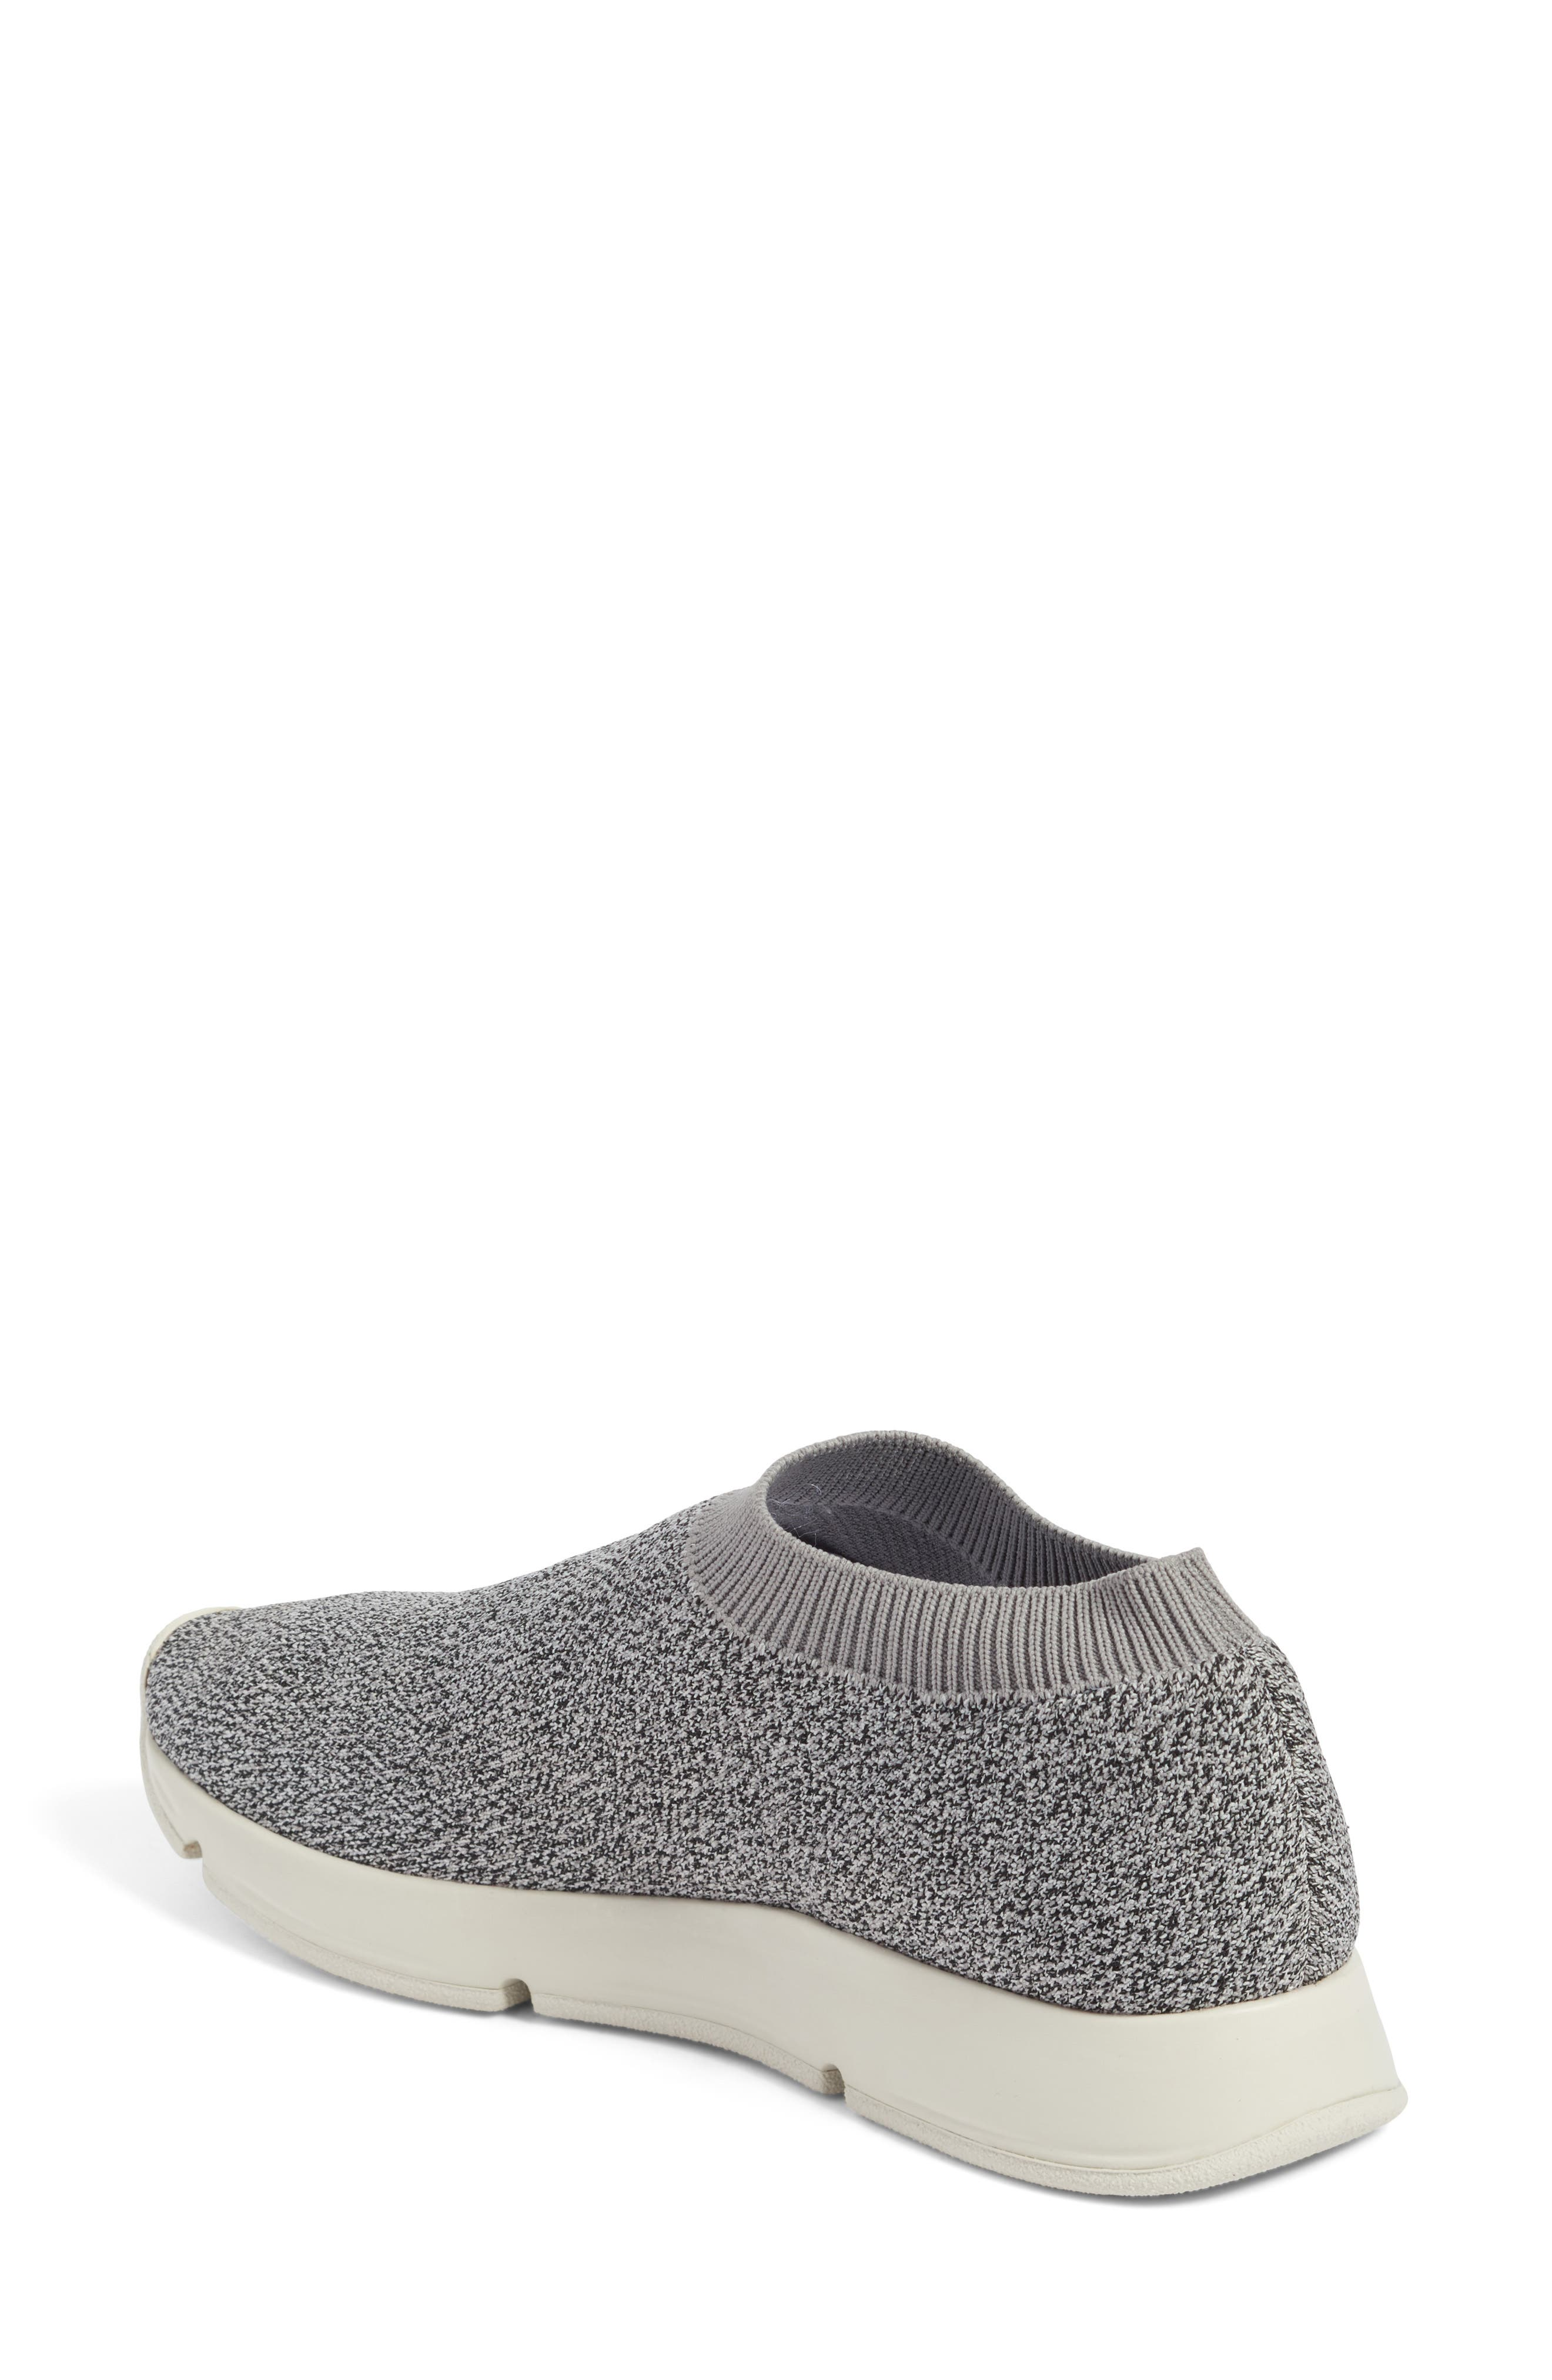 Theroux Slip-On Knit Sneaker,                             Alternate thumbnail 5, color,